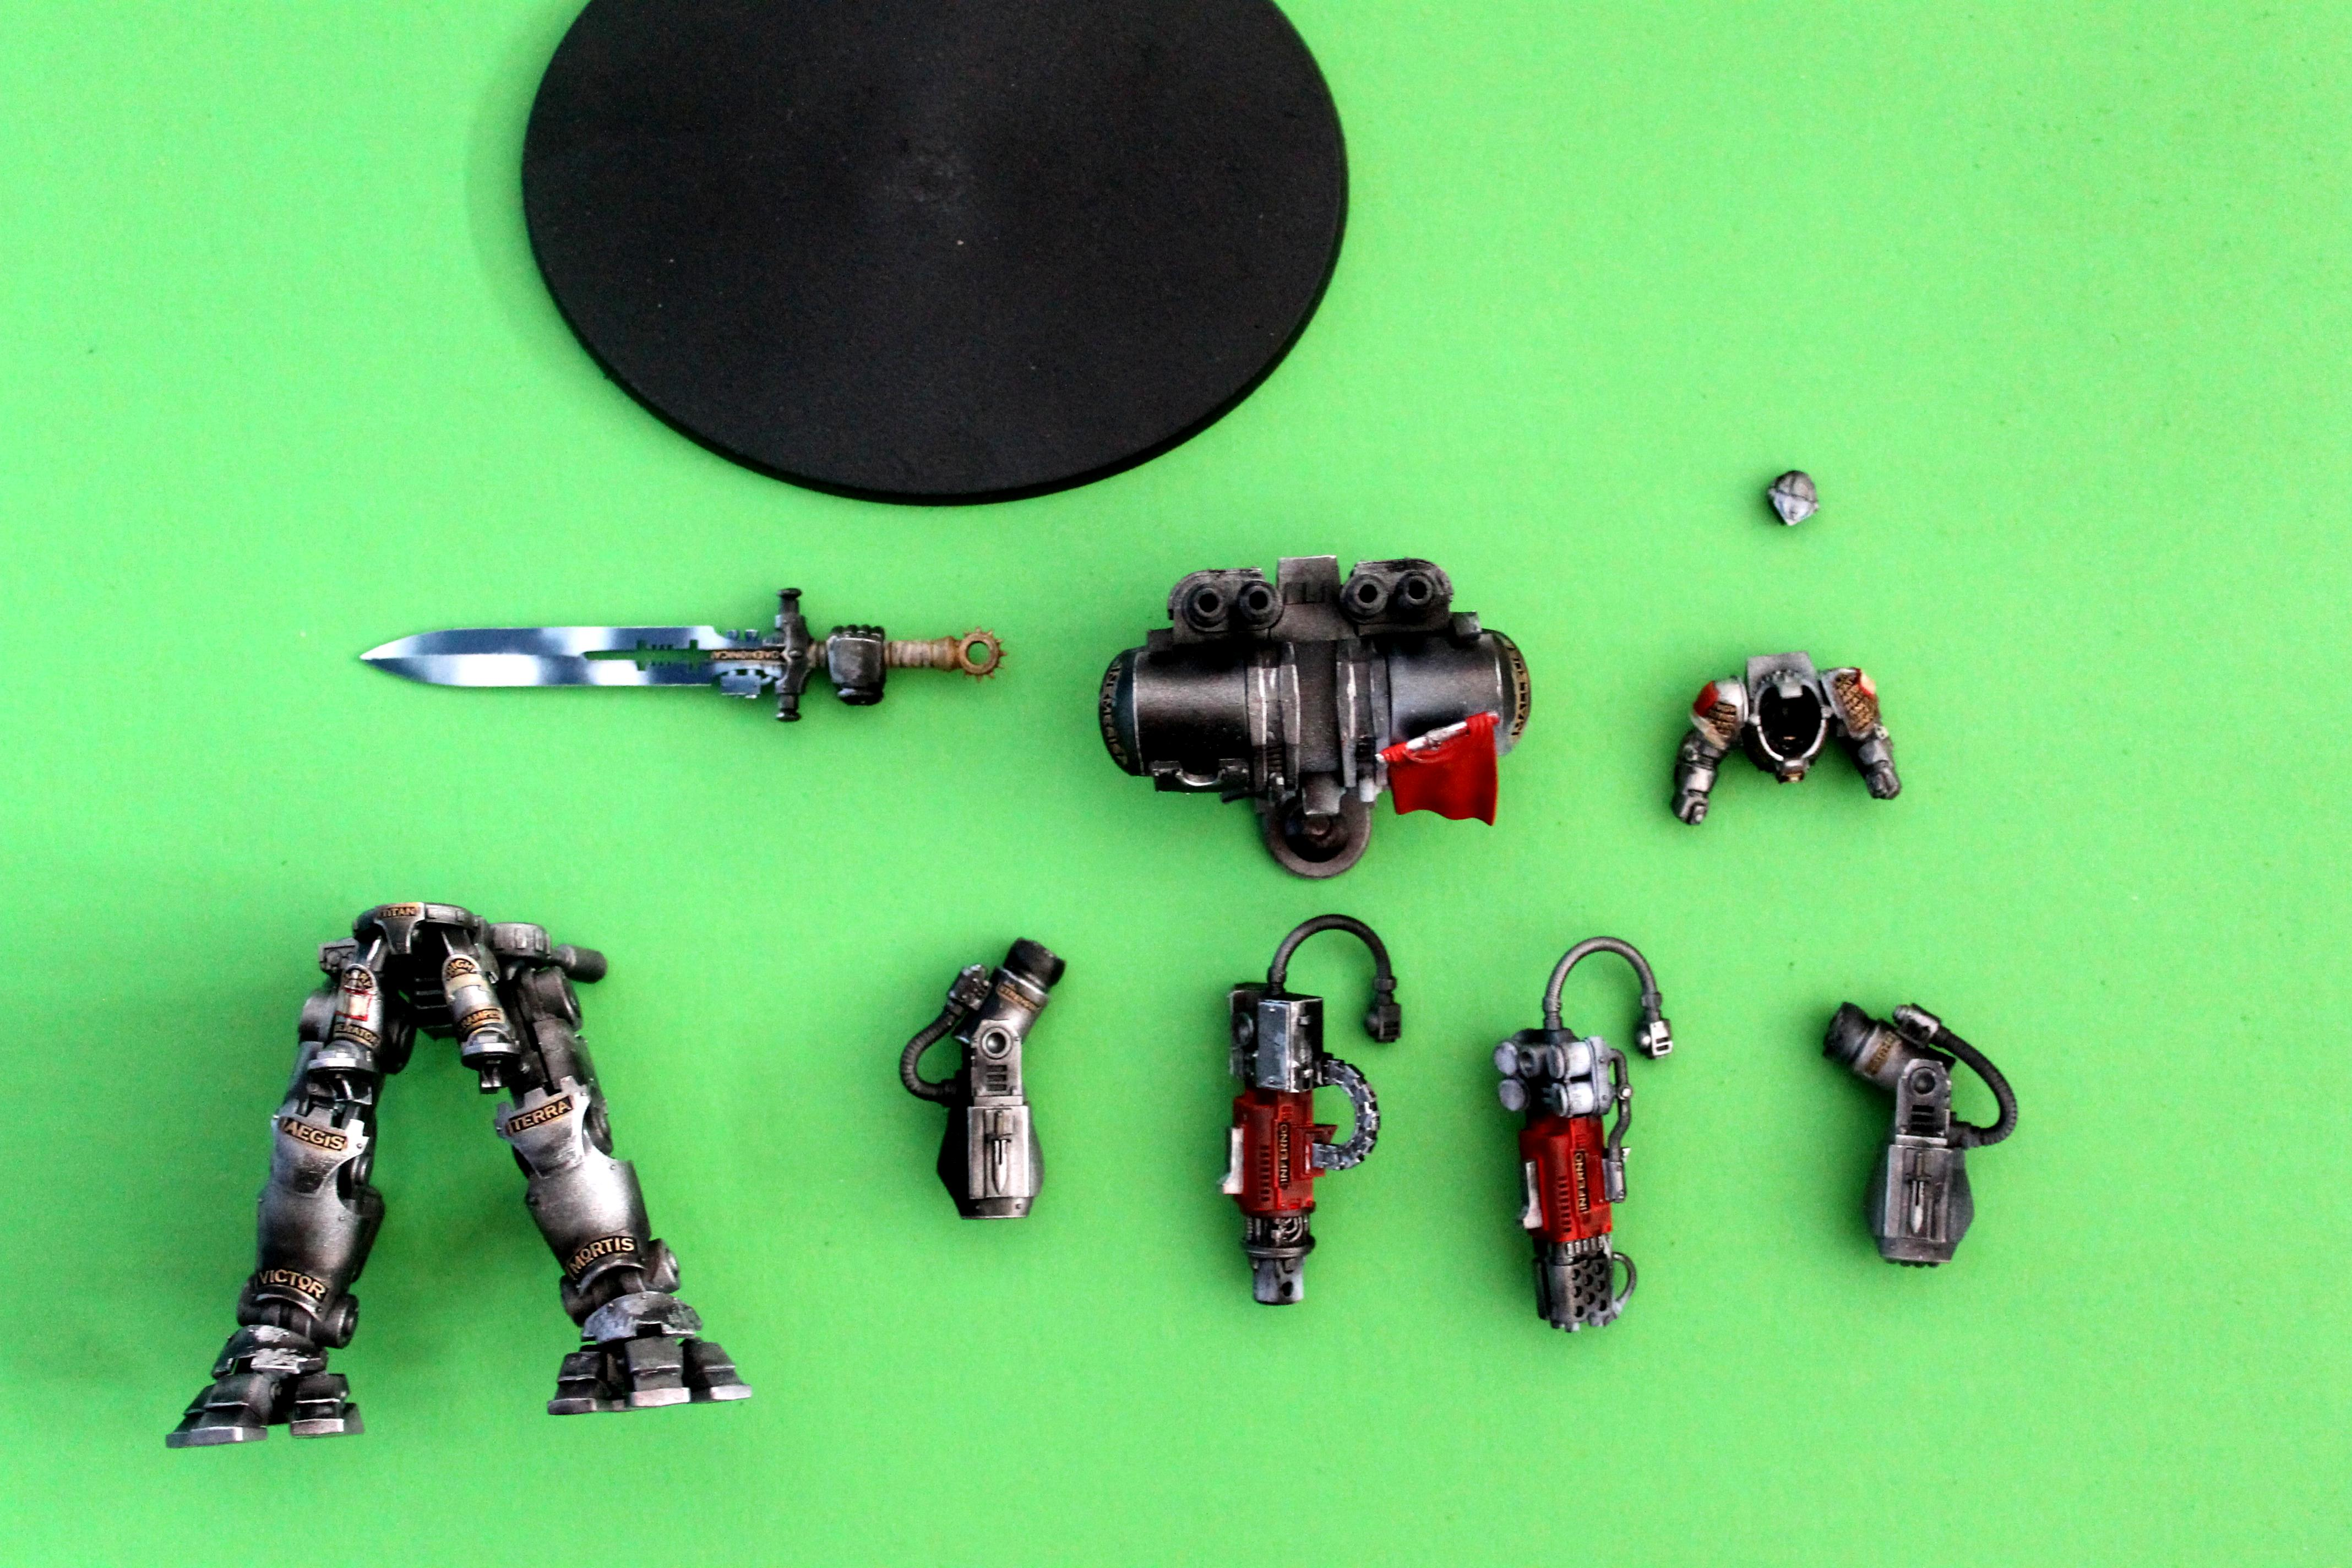 Airbrush, Big, Chipped, Dreadknight, Grey Knights, Magnet, Metalic, Nemesis, Nemesis Dreadknight, Power Sword, Shade, Smoke